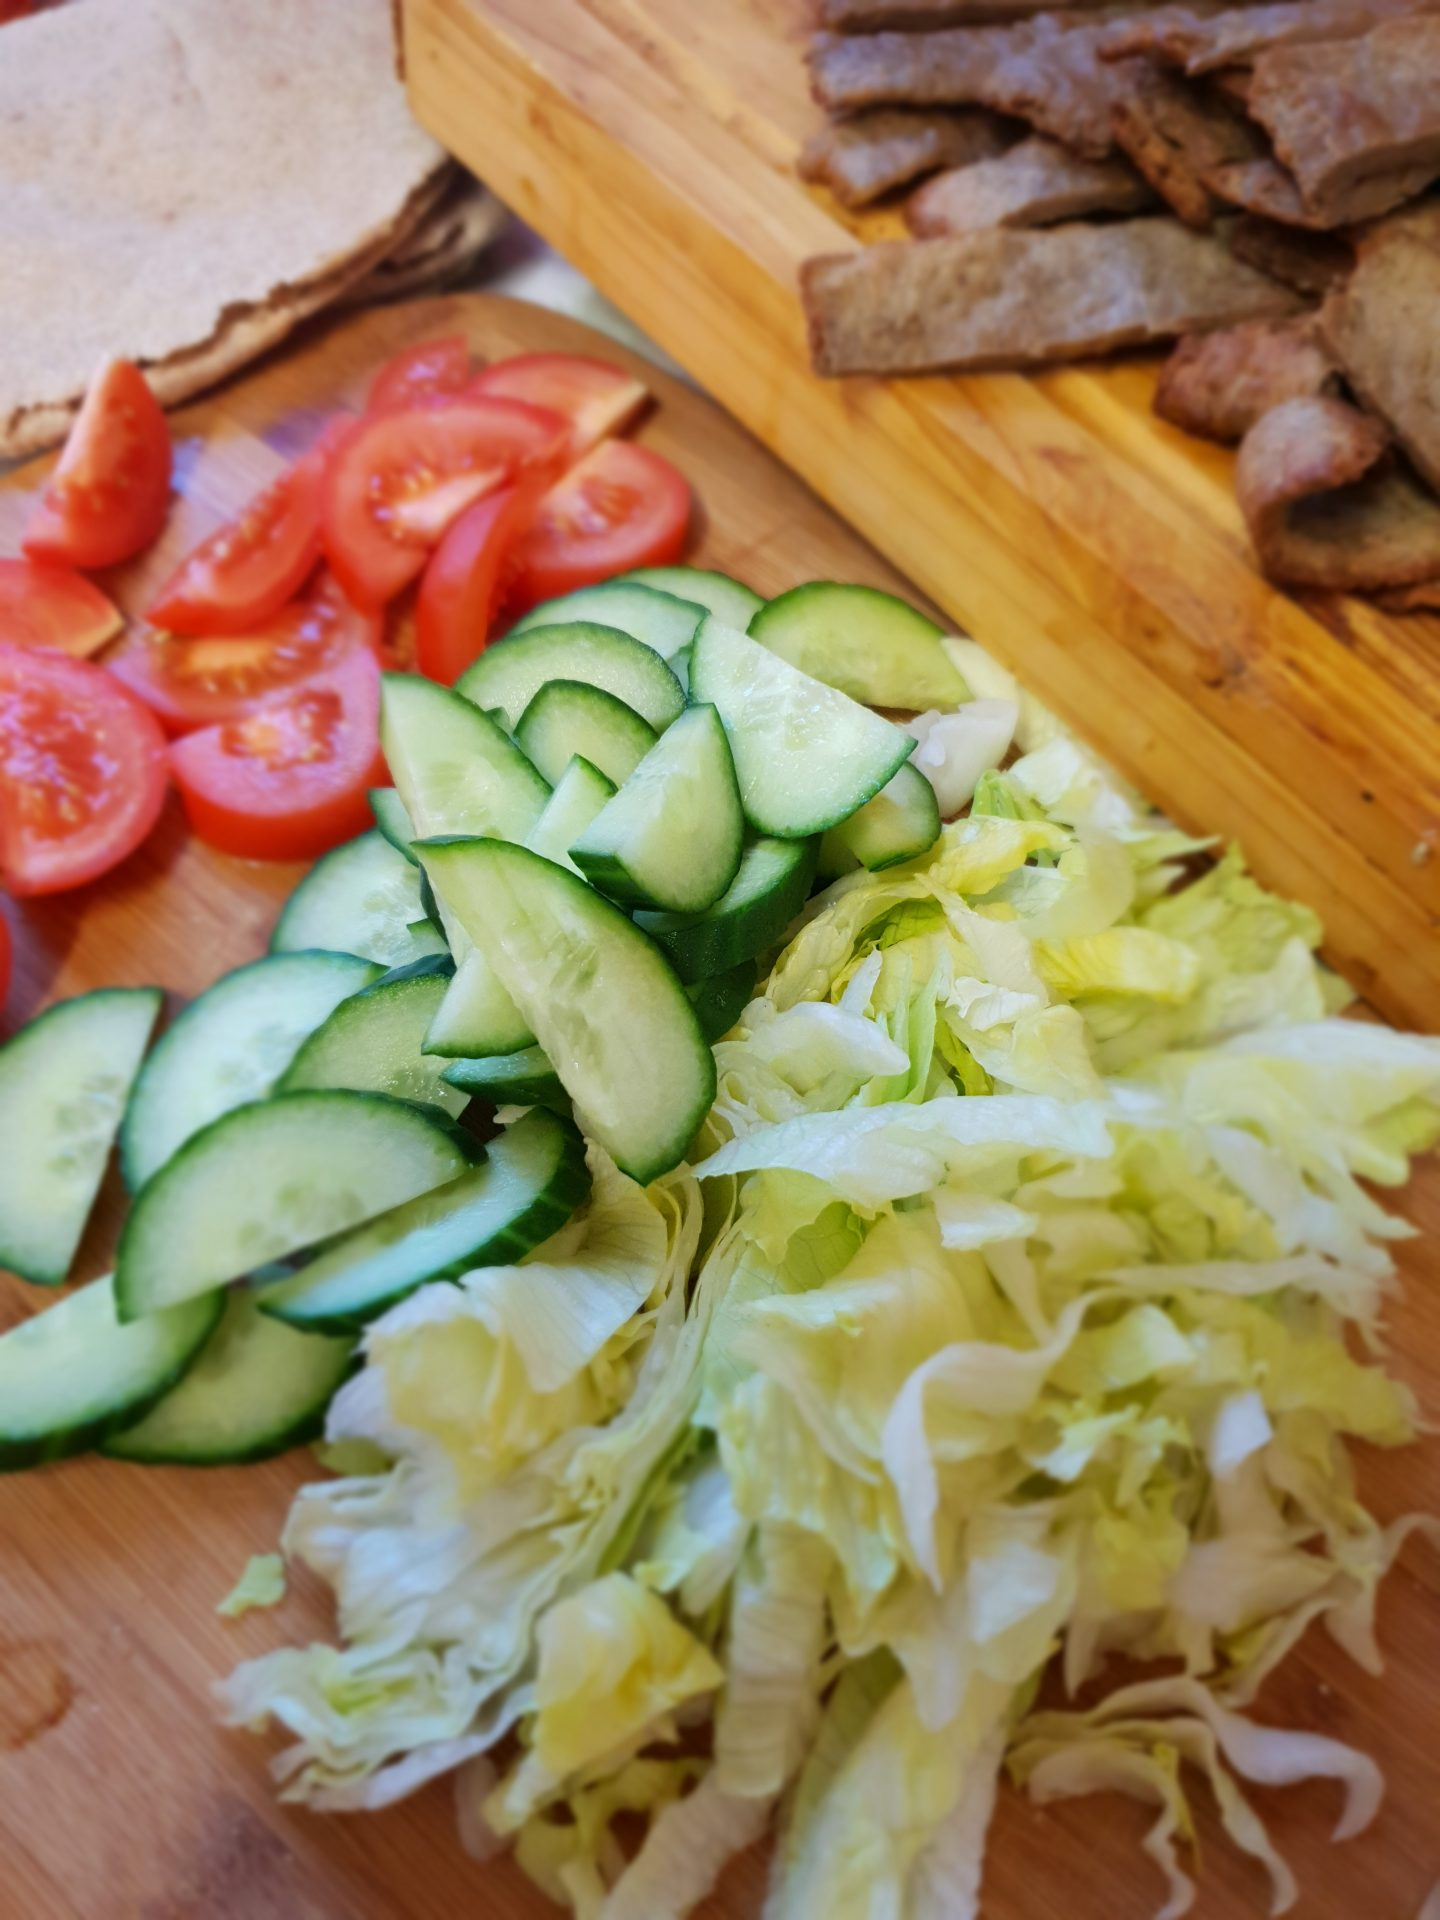 Doner kebab meat with shredded lettuce, cucumber and tomatoes.